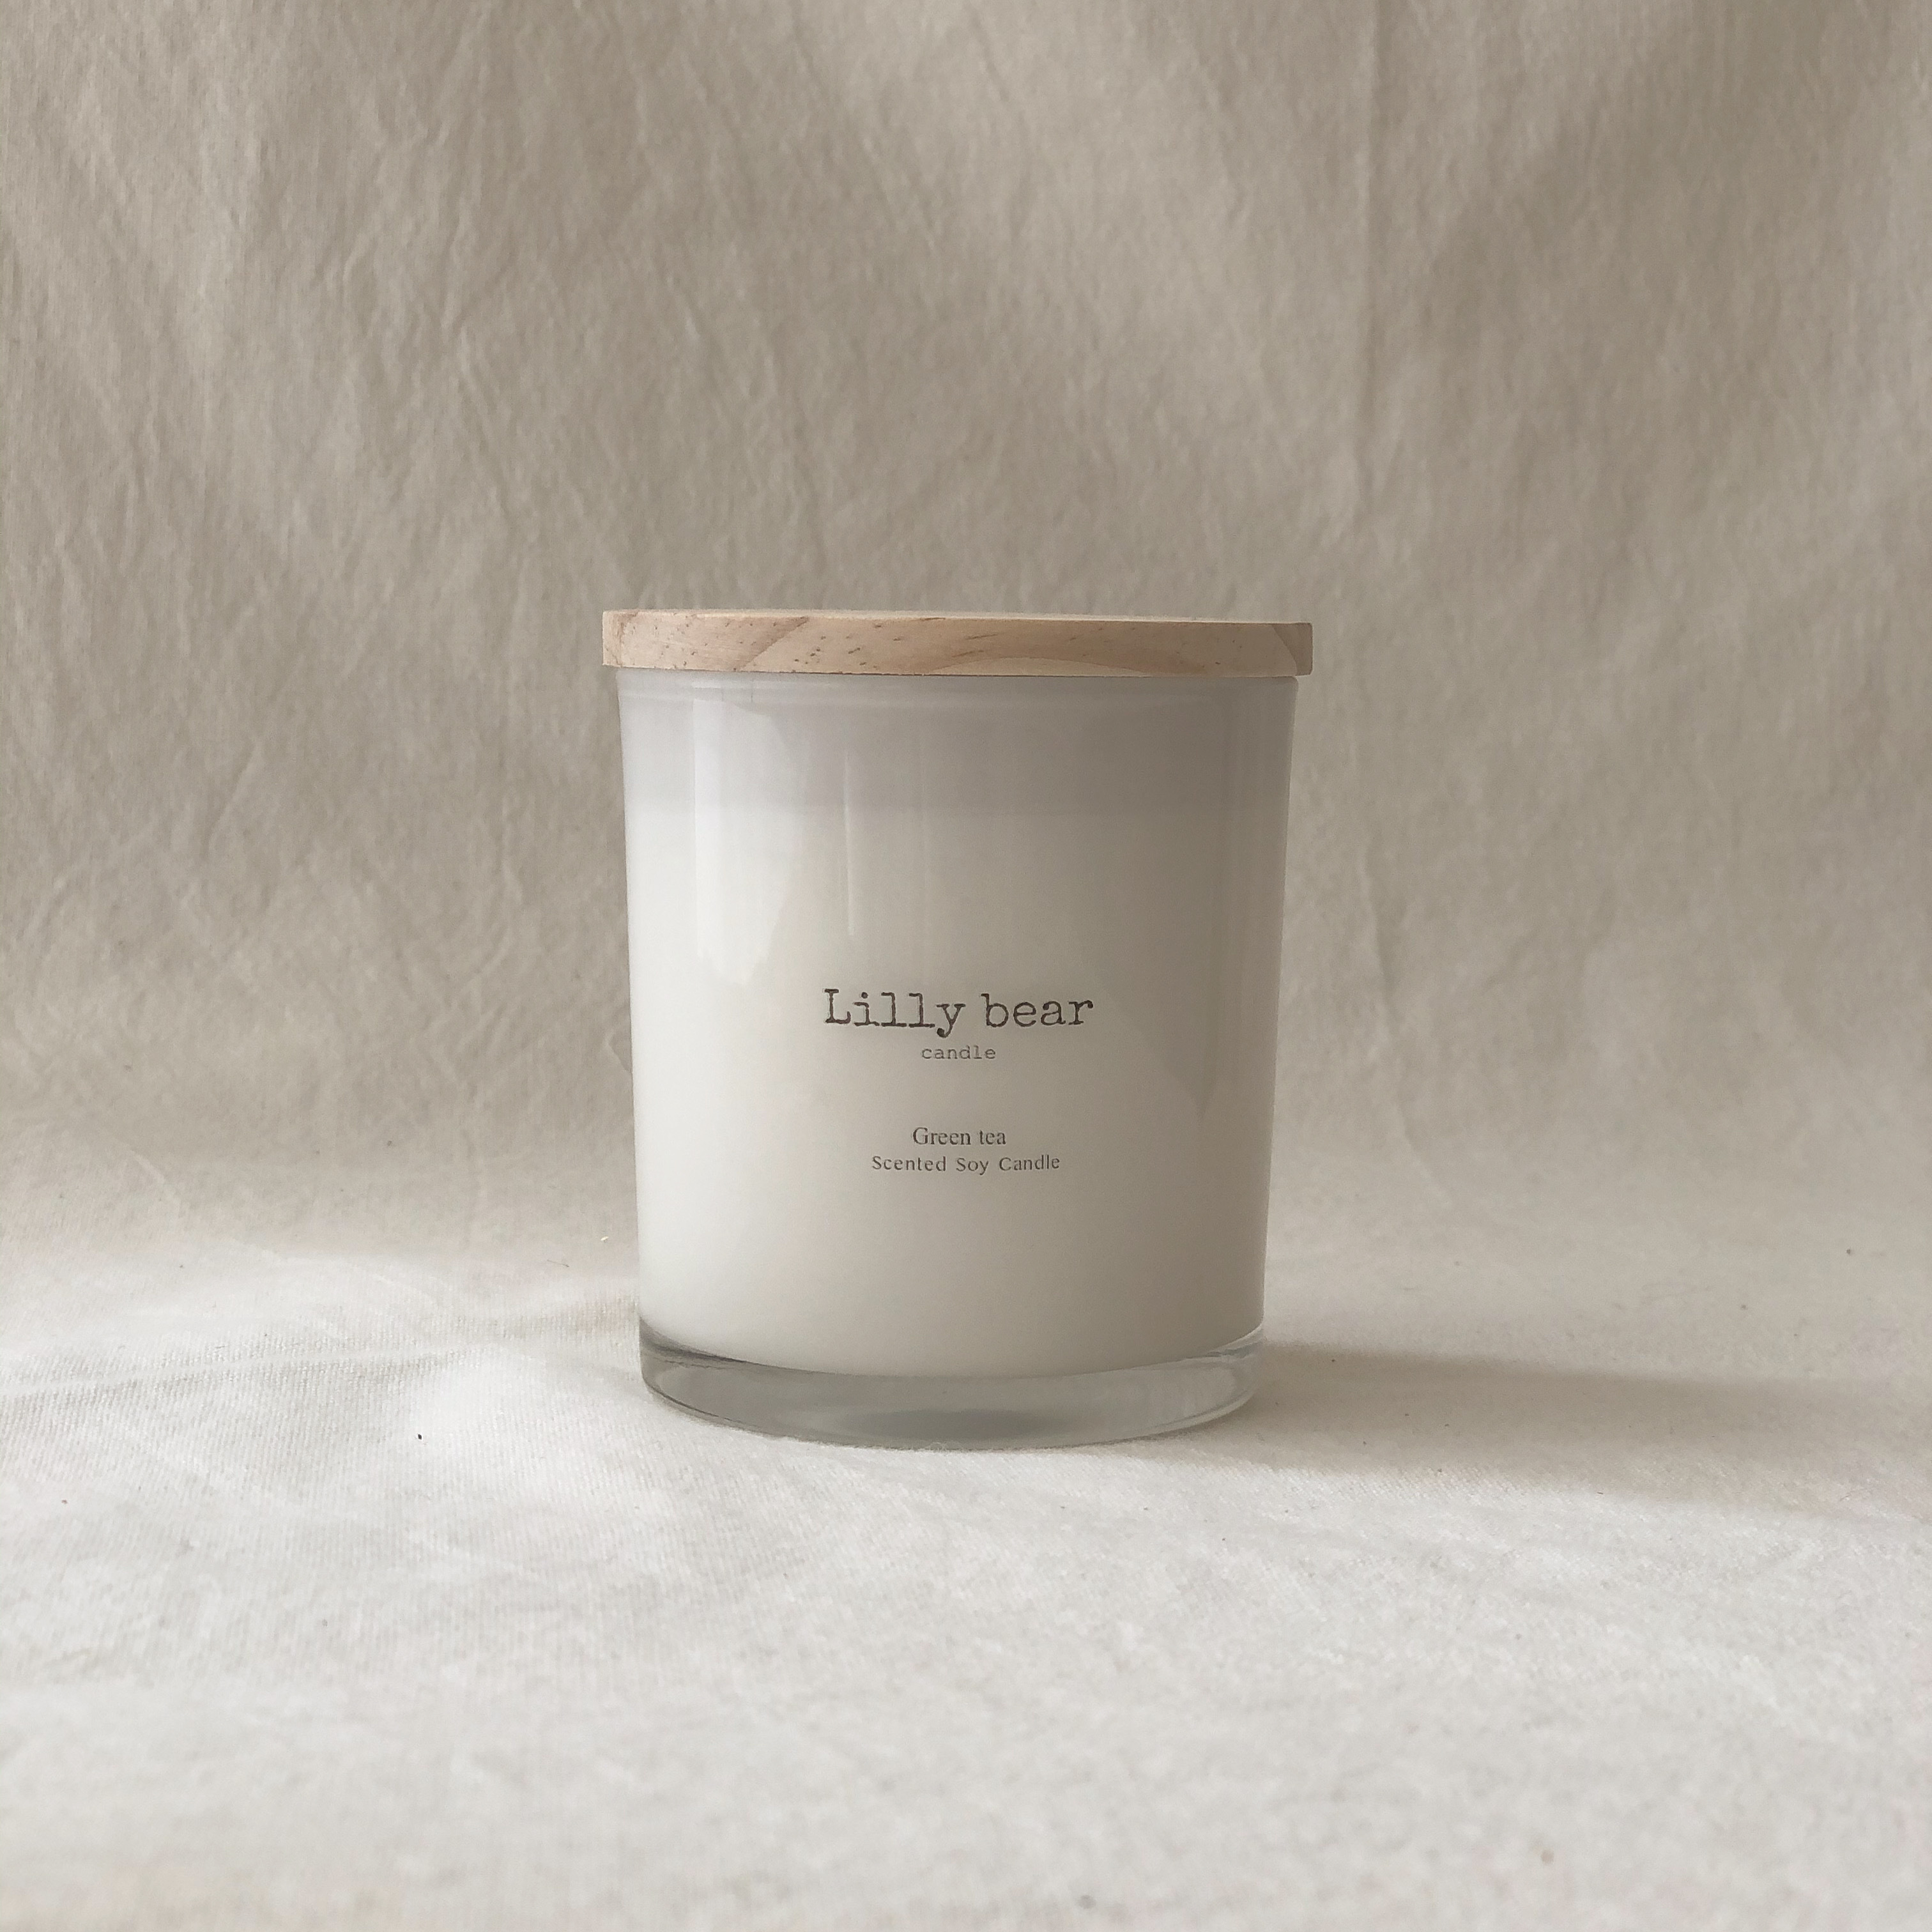 GREEN TEA/Classic soy candle